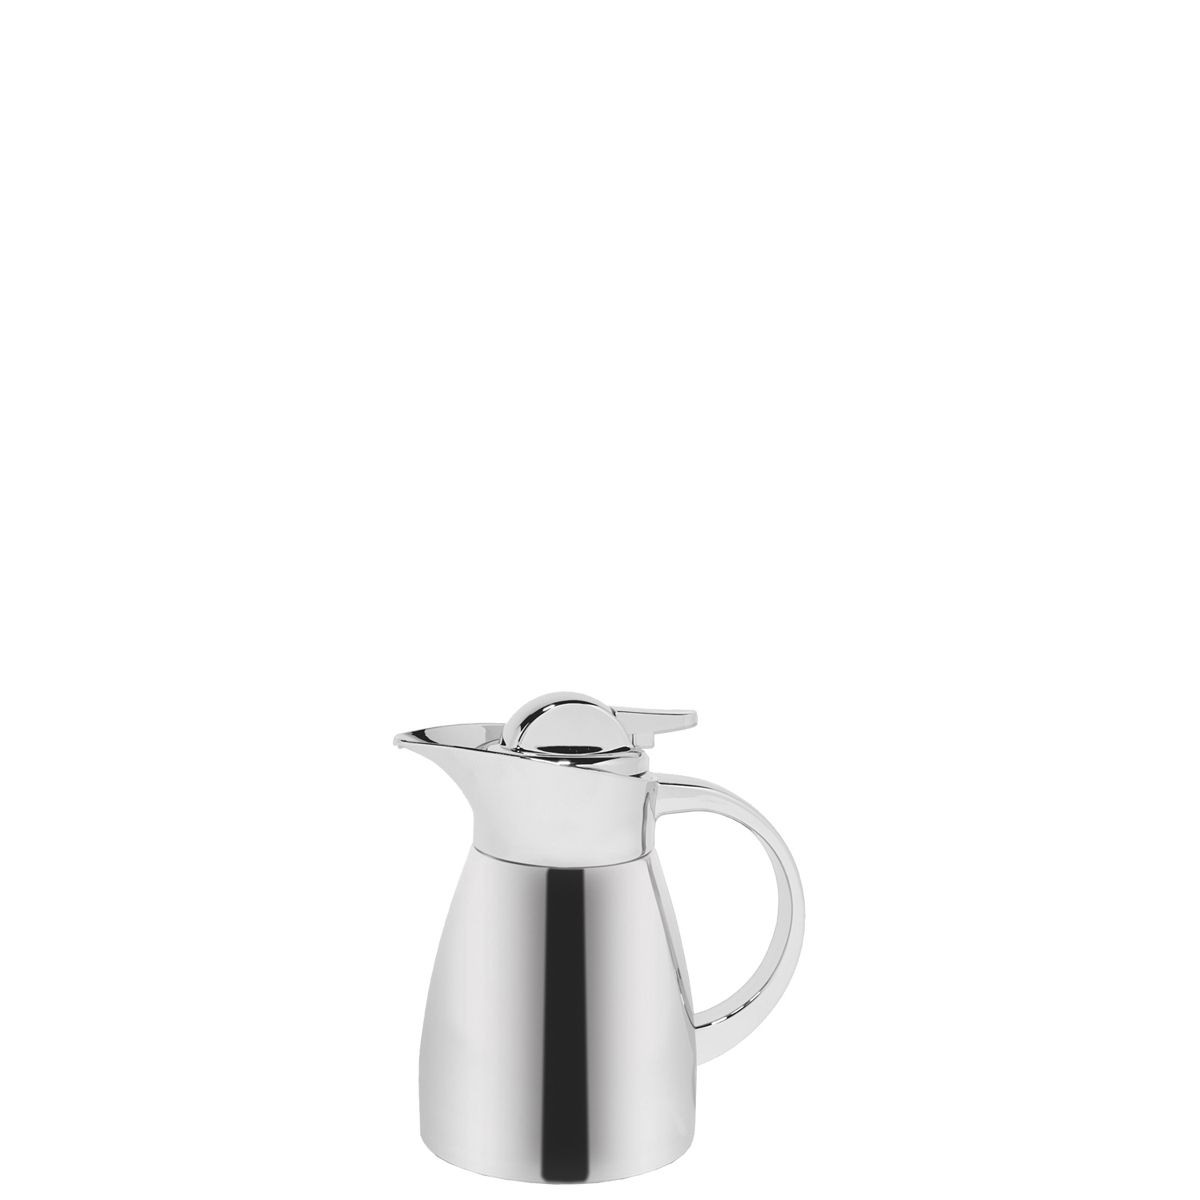 Service Ideas LVP67 Elite Touch Stainless Steel Server, 0.6 Liter